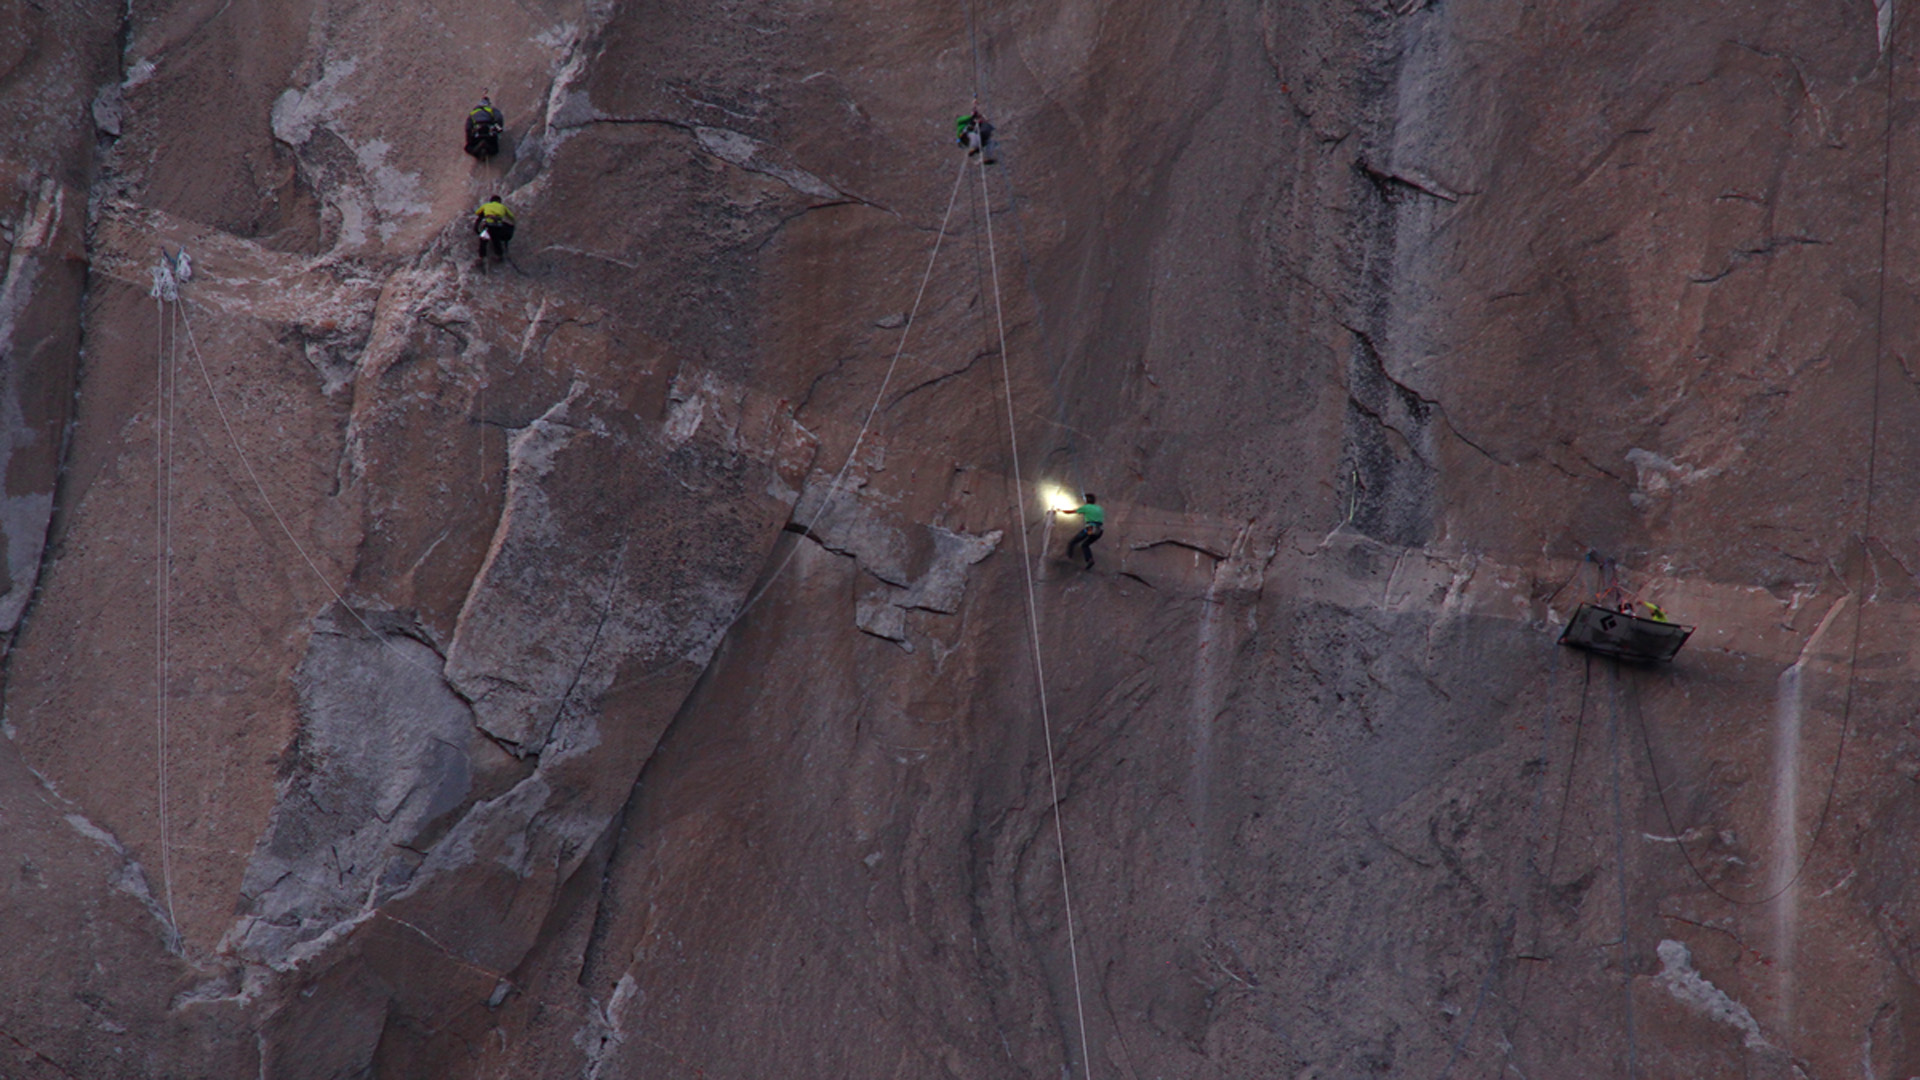 Kevin Jorgeson of Santa Rosa (center, in green) navigating Pitch 15 while Tommy Caldwell (far right, in yellow) of Colorado fixes a running rope around a cleat.  Multiple cameramen hang on ropes taking photos and video. Jan. 7, 2015